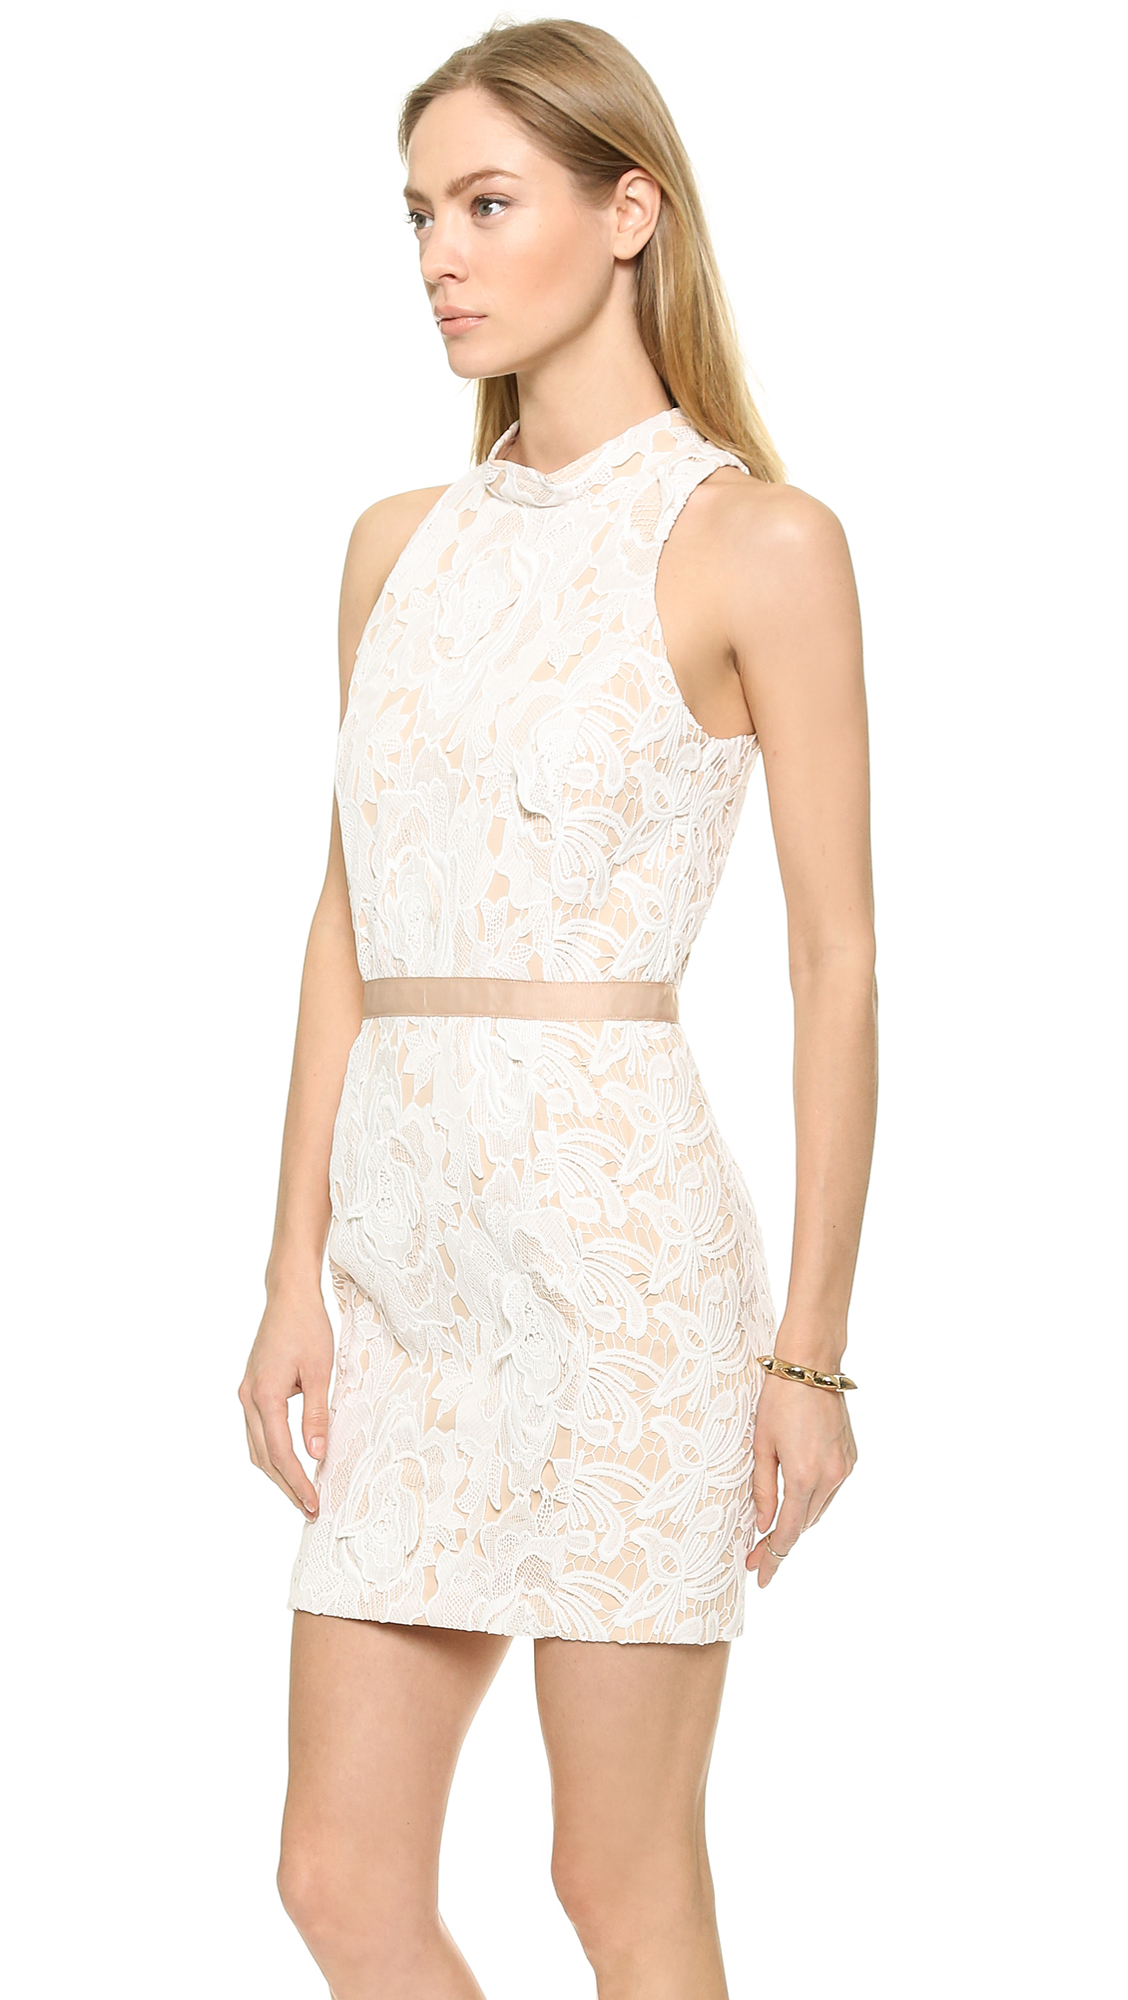 Lyst English Factory Lace Mini Dress Ivory In White